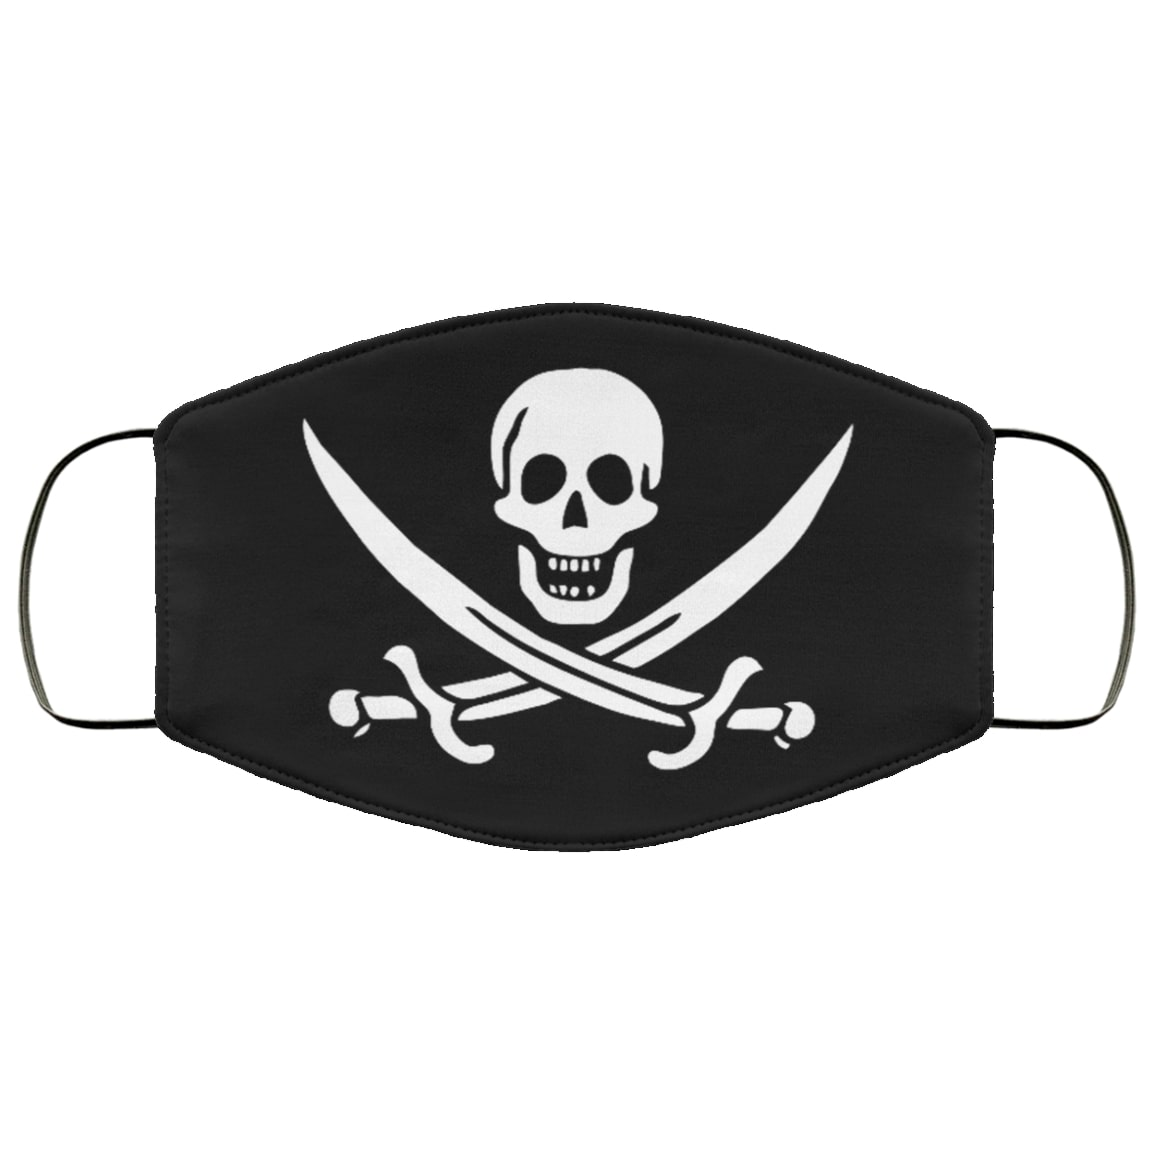 Jolly roger all over printed face mask 1